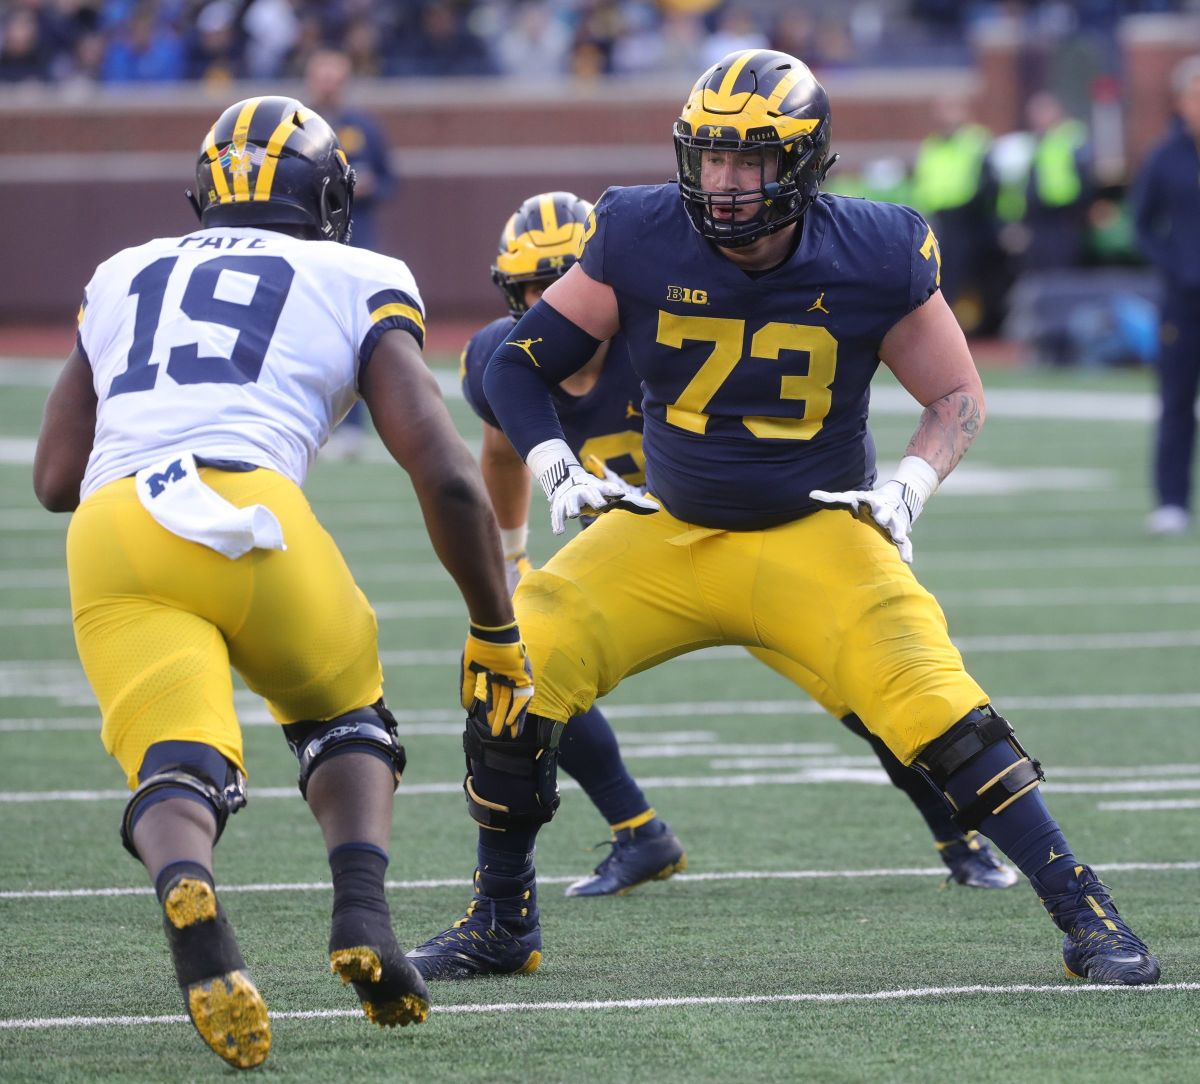 Michigan offensive lineman Jalen Mayfield blocks defensive end Kwity Paye during the spring game Saturday, April 13, 2019 at Michigan Stadium in Ann Arbor. © Kirthmon F. Dozier, Detroit Free Press